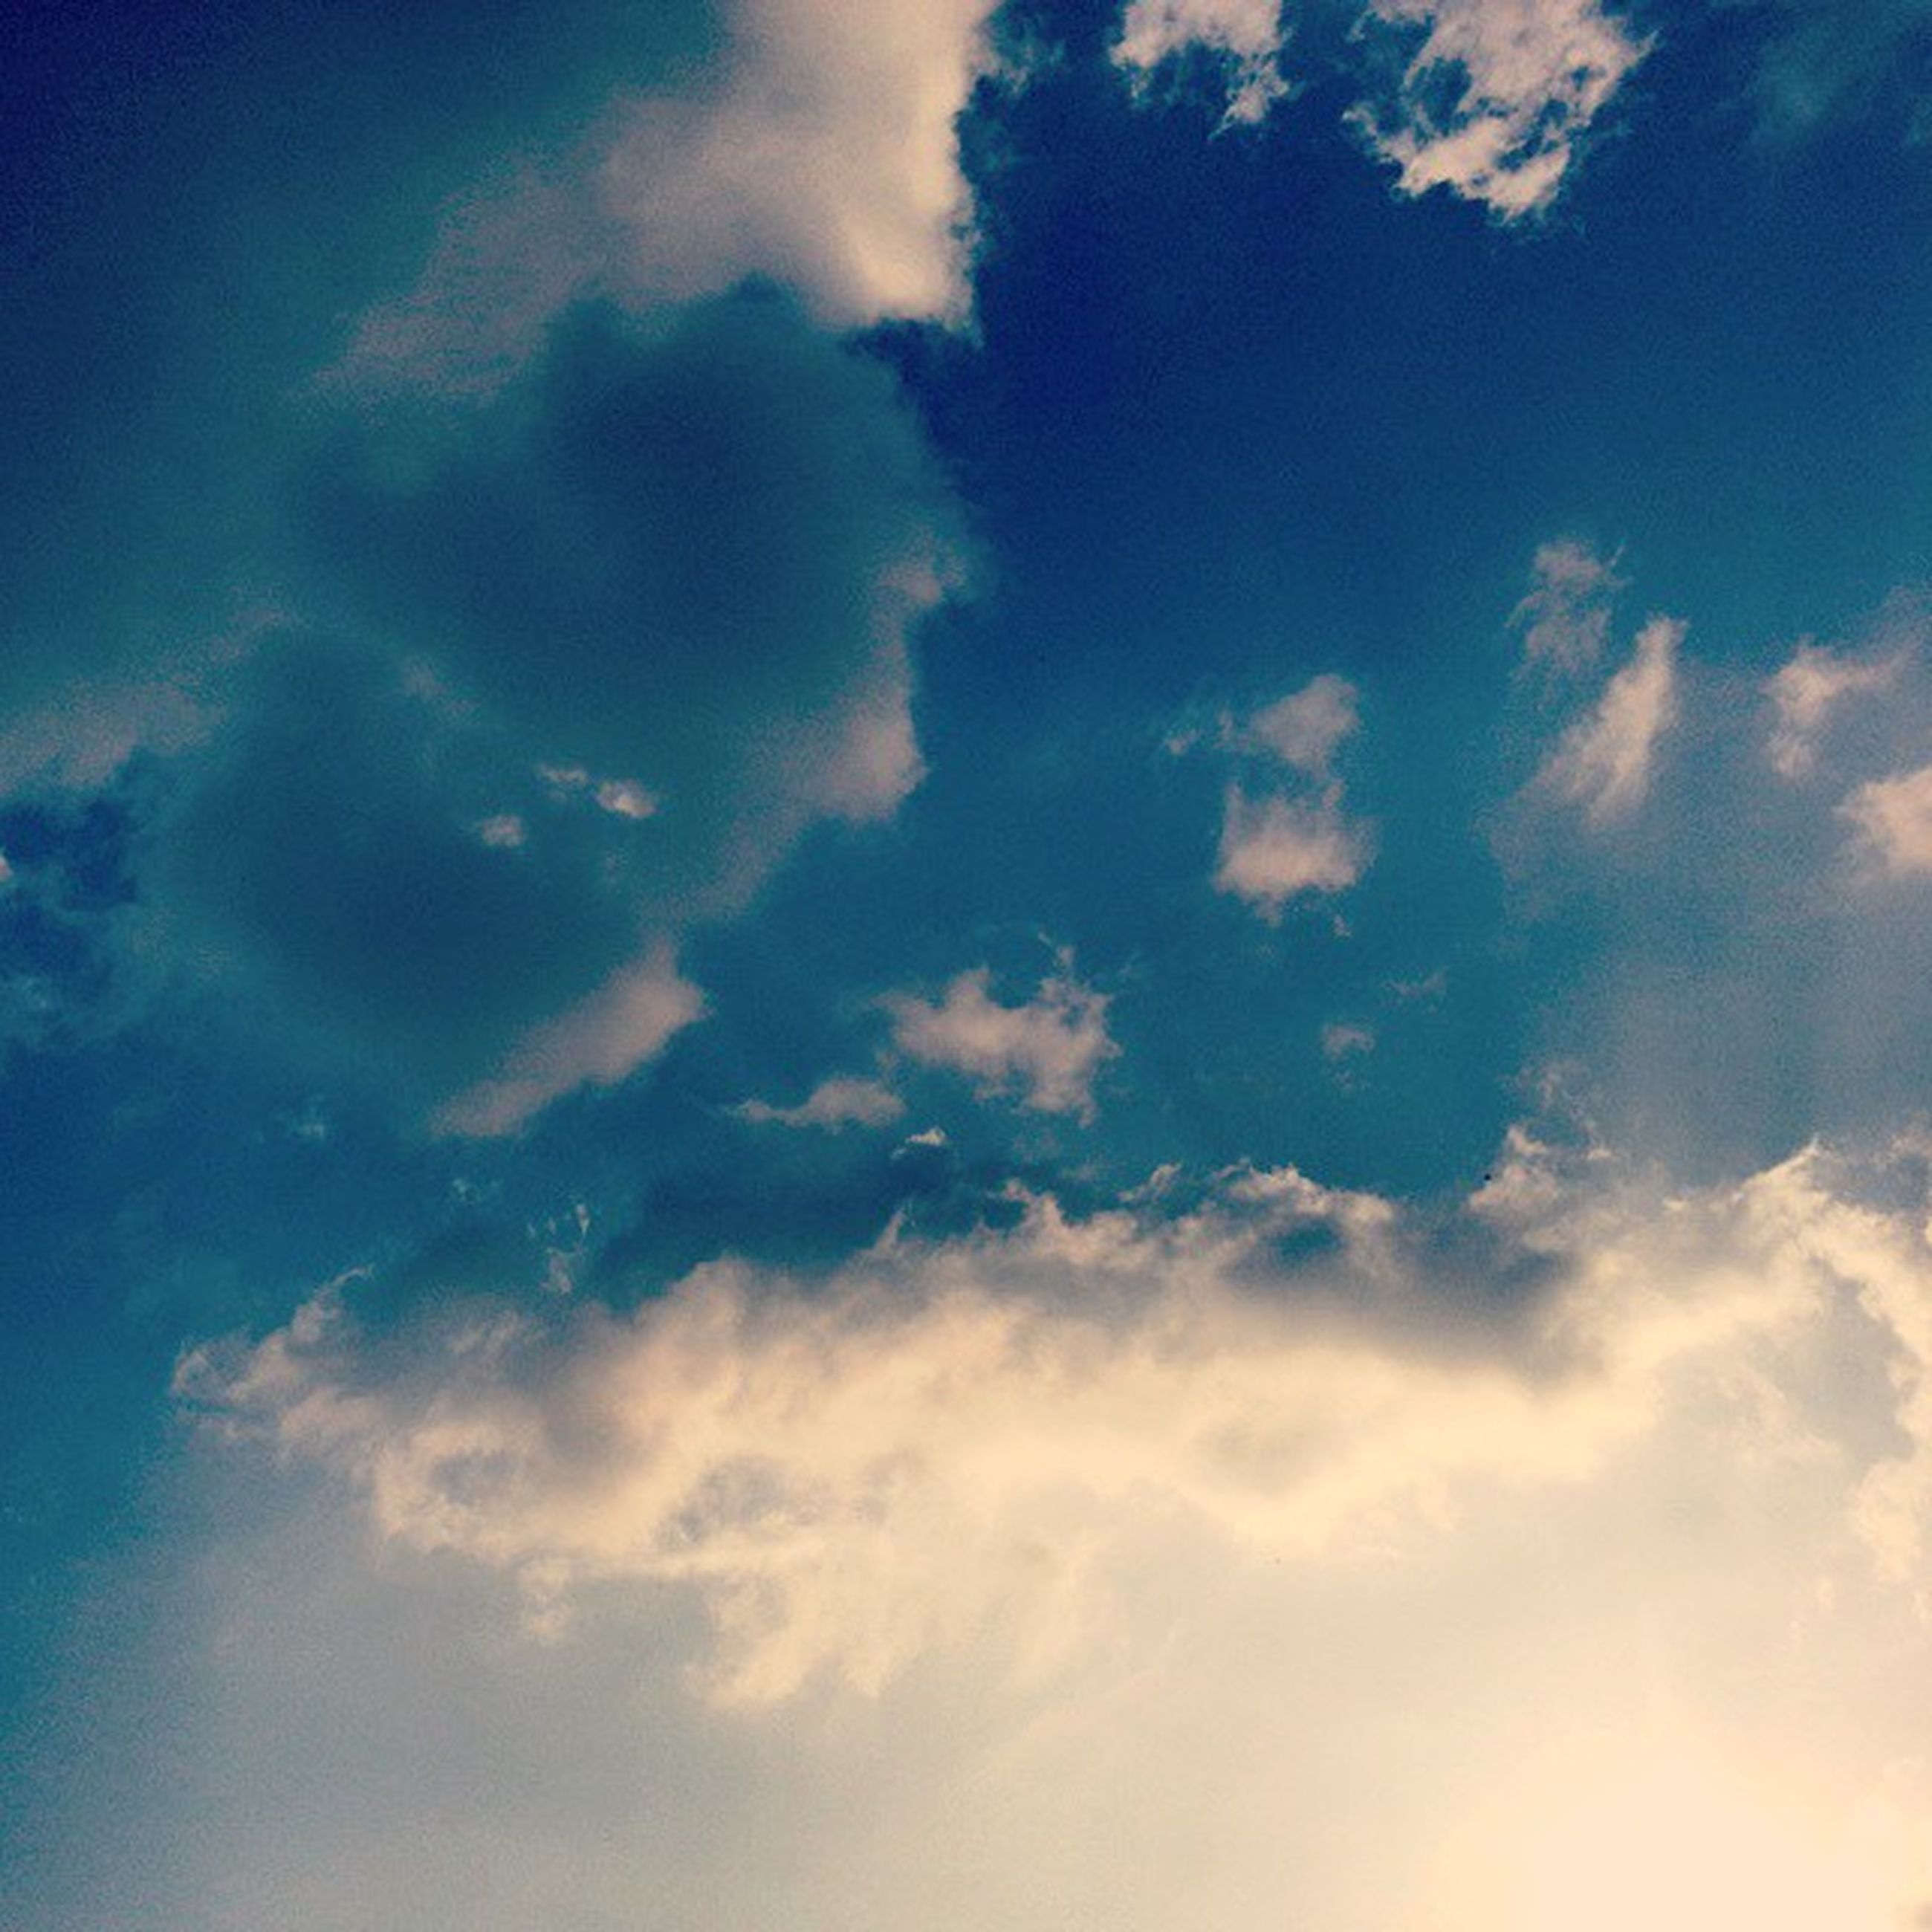 sky, low angle view, cloud - sky, blue, sky only, beauty in nature, tranquility, scenics, nature, tranquil scene, cloud, cloudy, cloudscape, backgrounds, idyllic, outdoors, full frame, no people, majestic, day